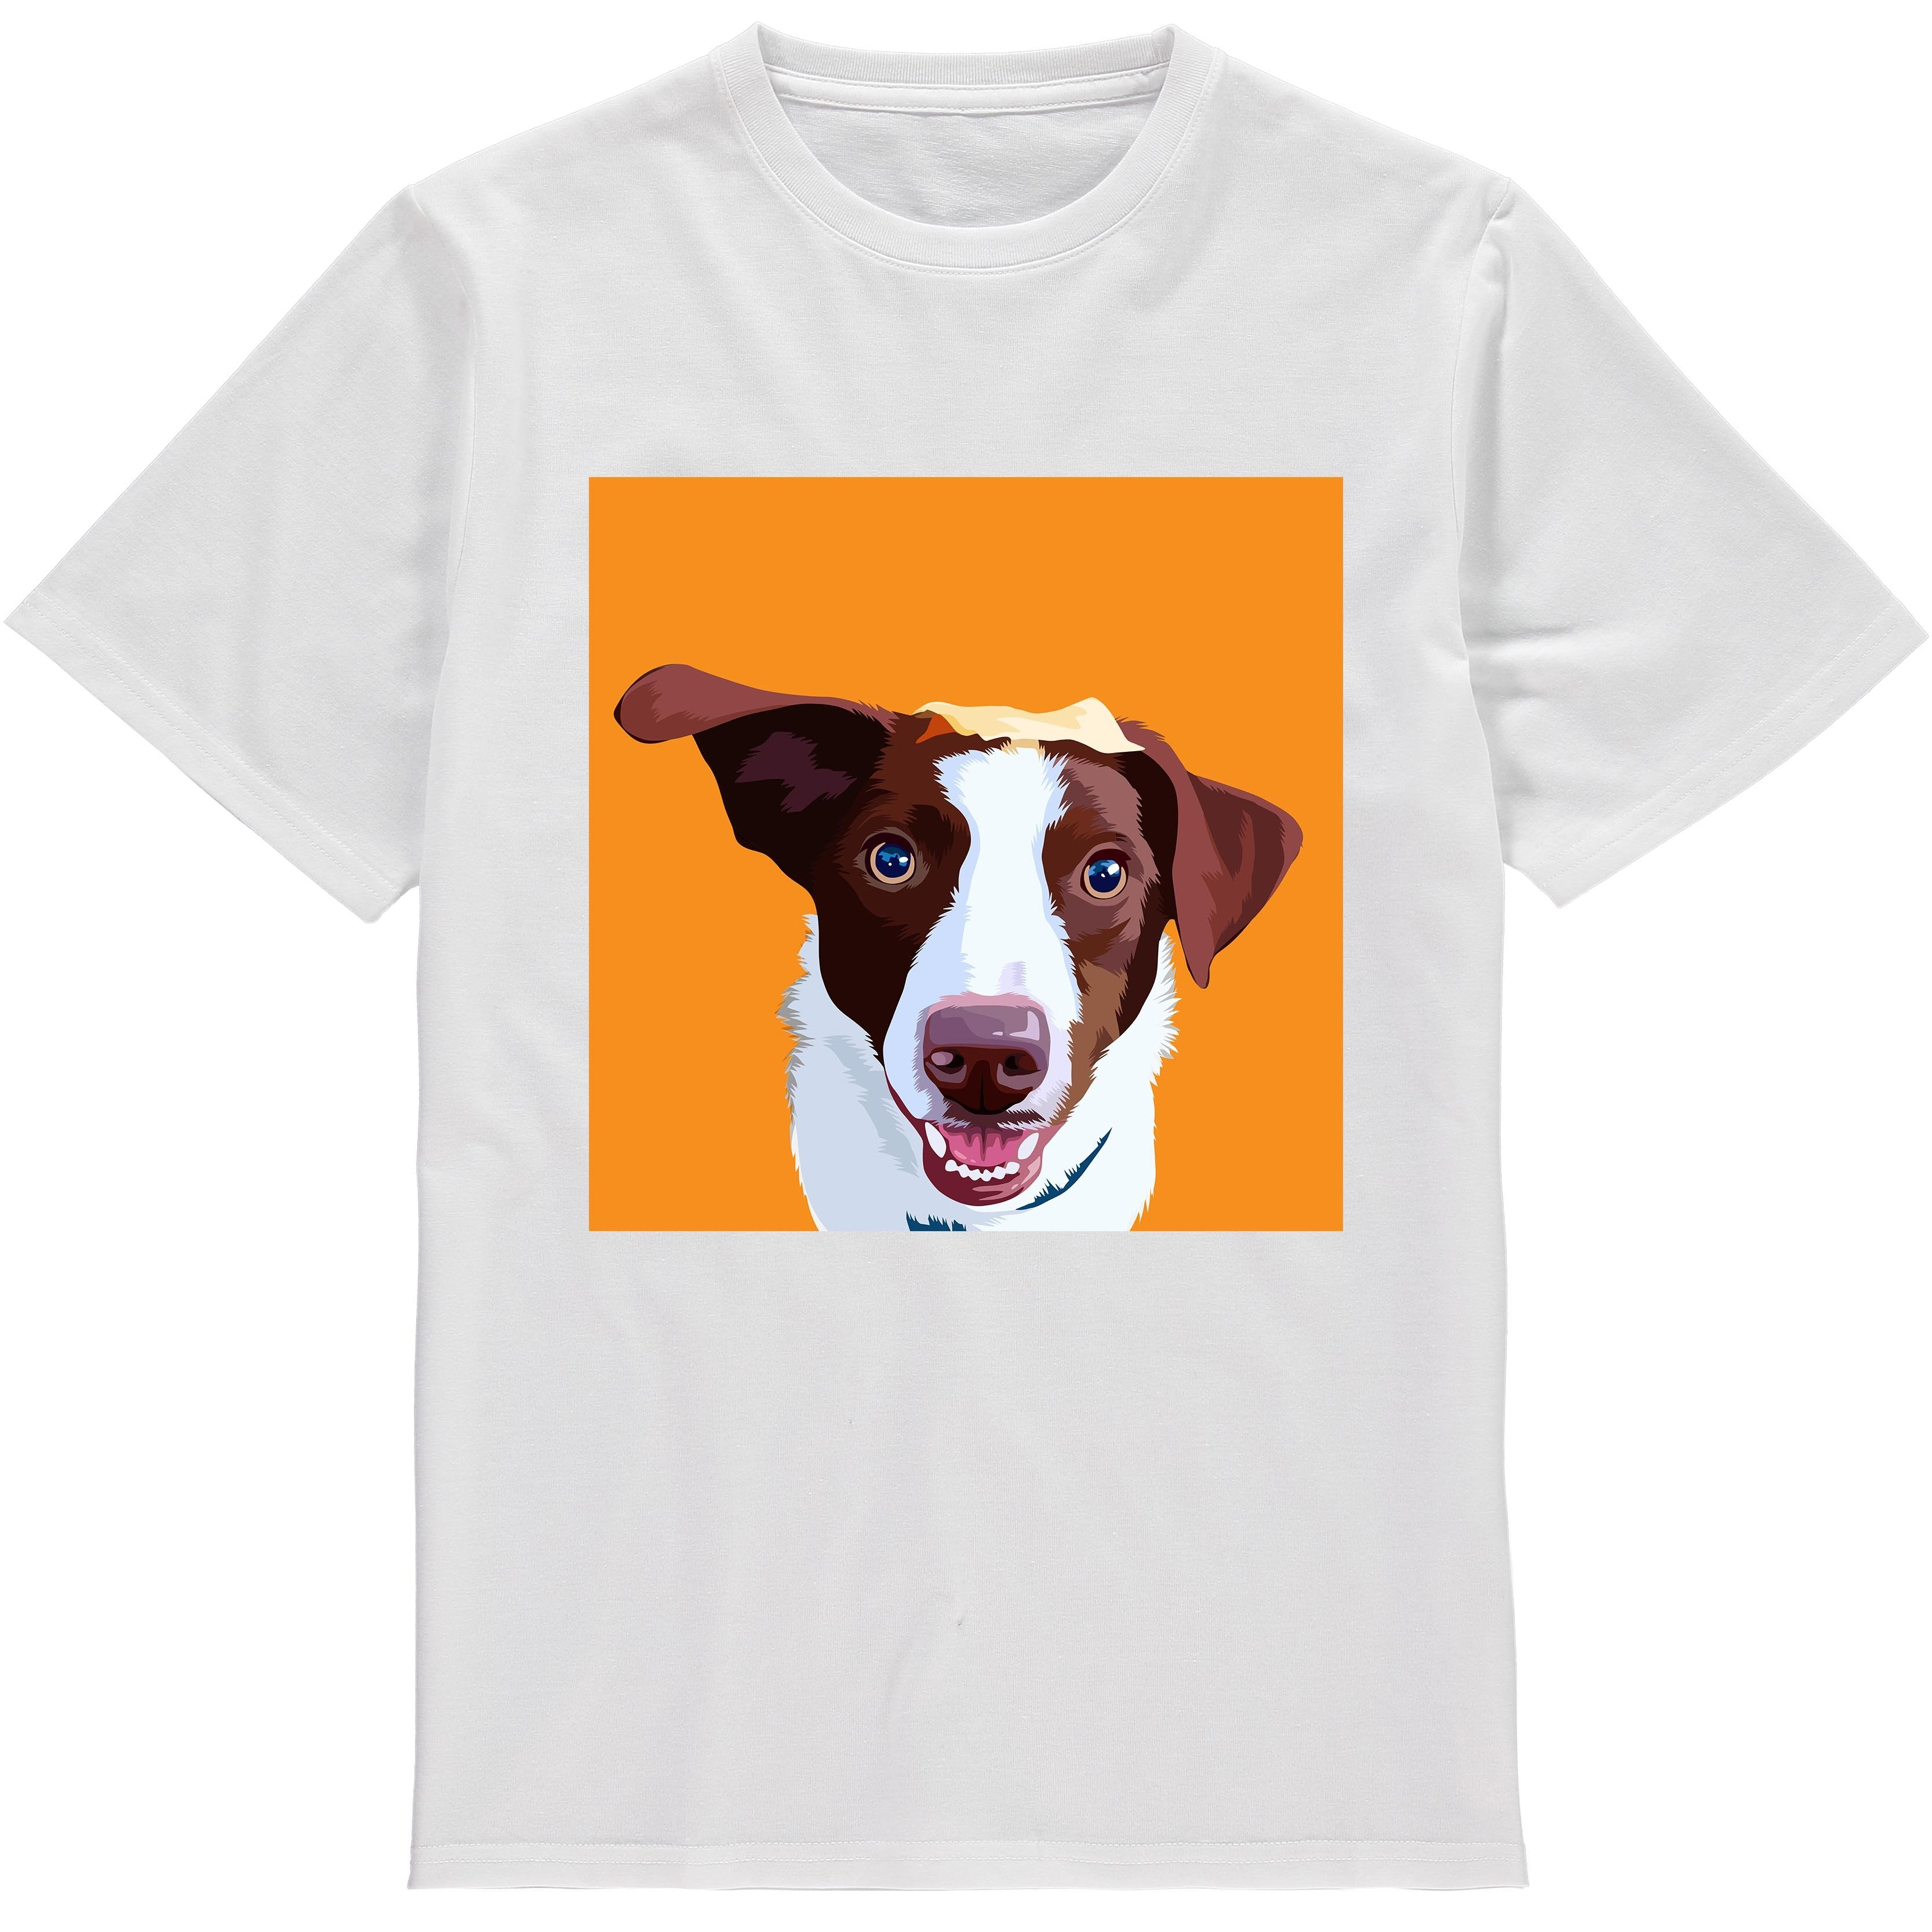 b76de345 Custom Dog Shirts | Personalized Dog T-Shirts | Canvas Creatures UK